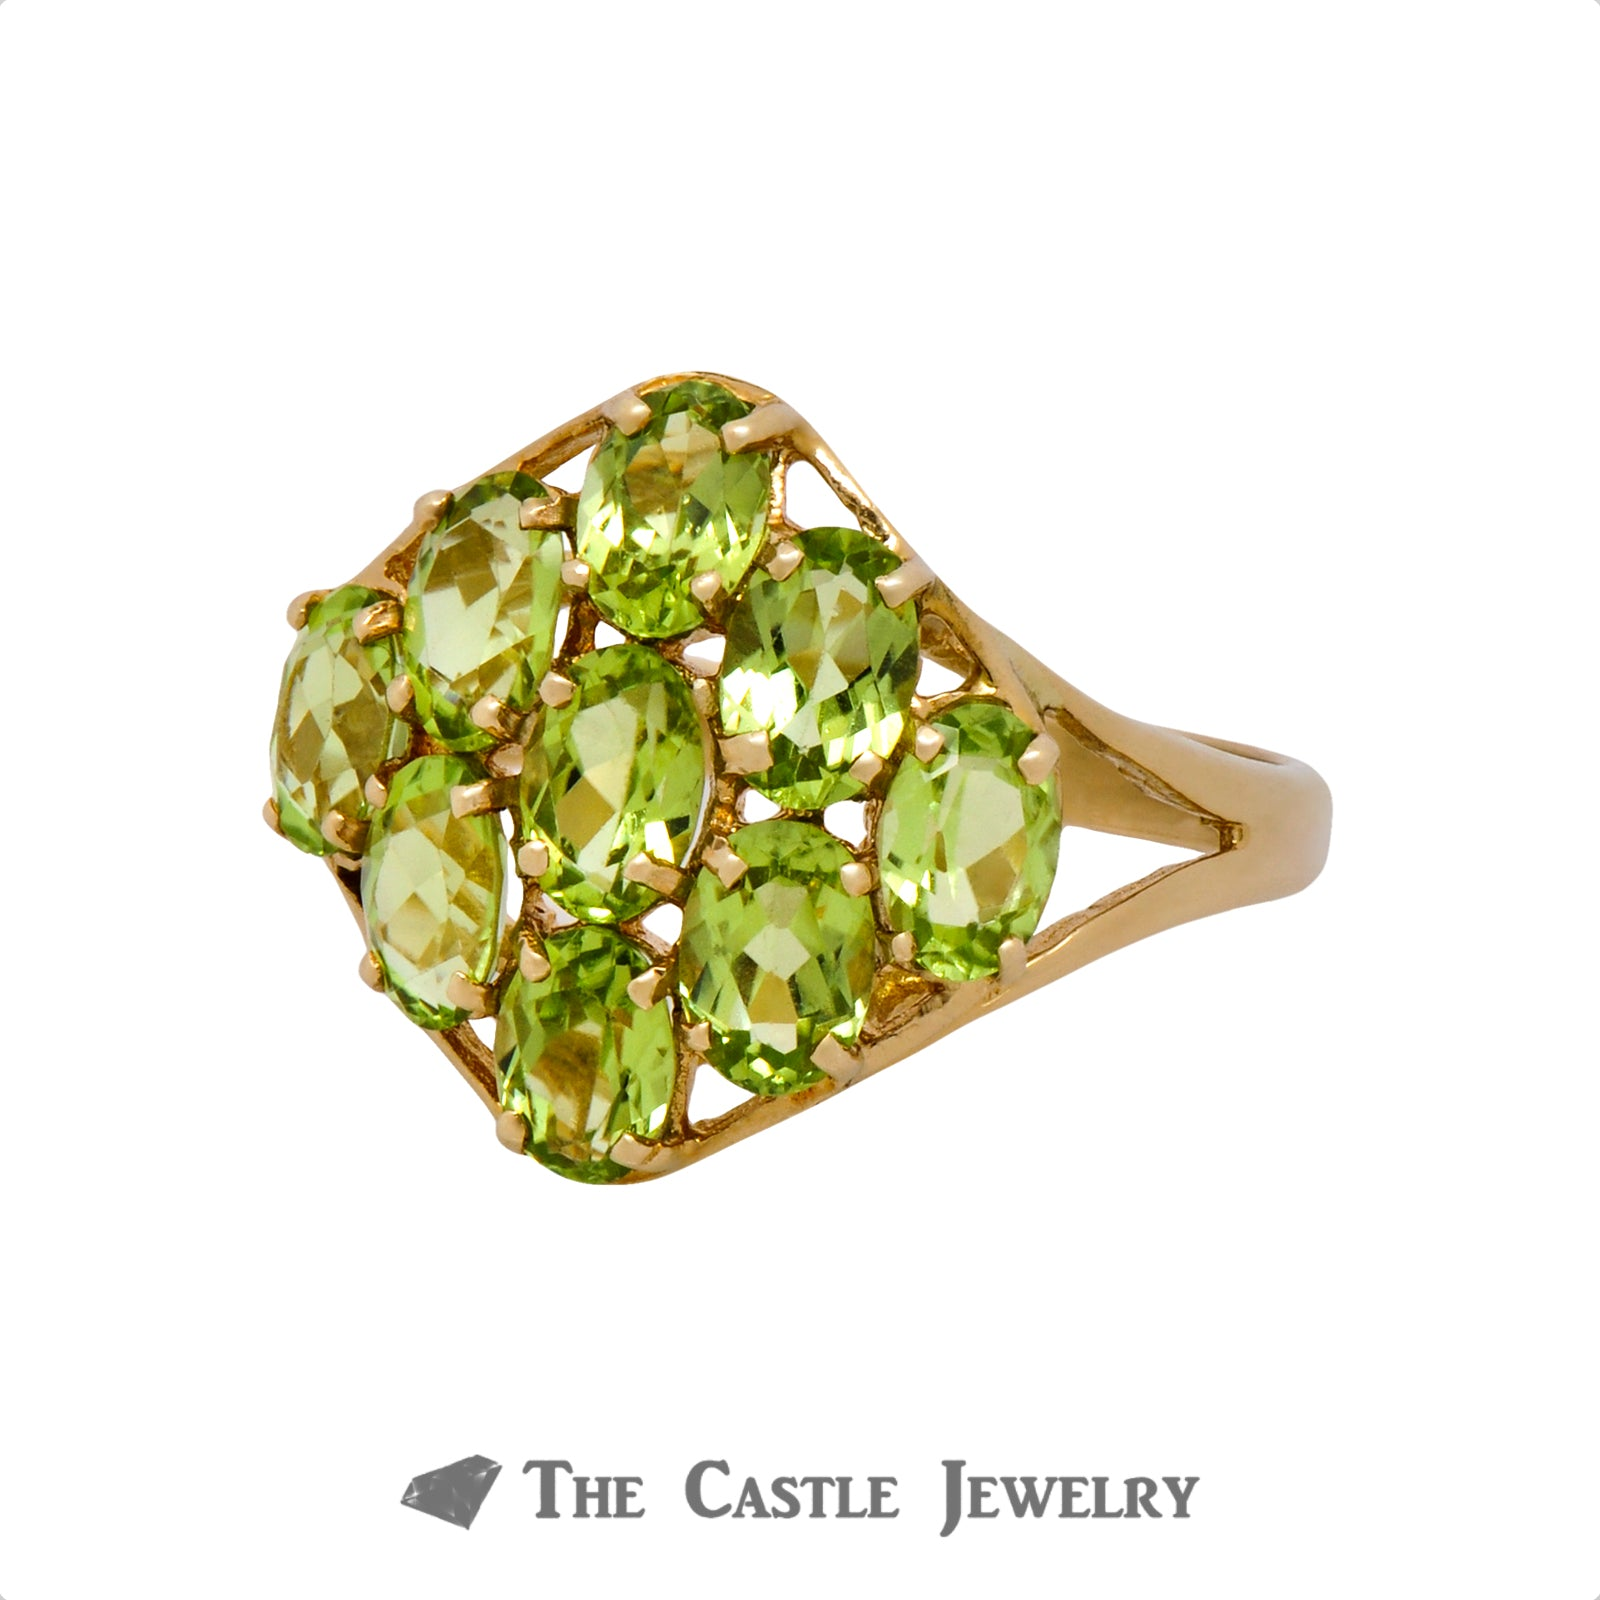 Oval Cut Peridot Cluster Ring Crafted in 10k Yellow Gold-2